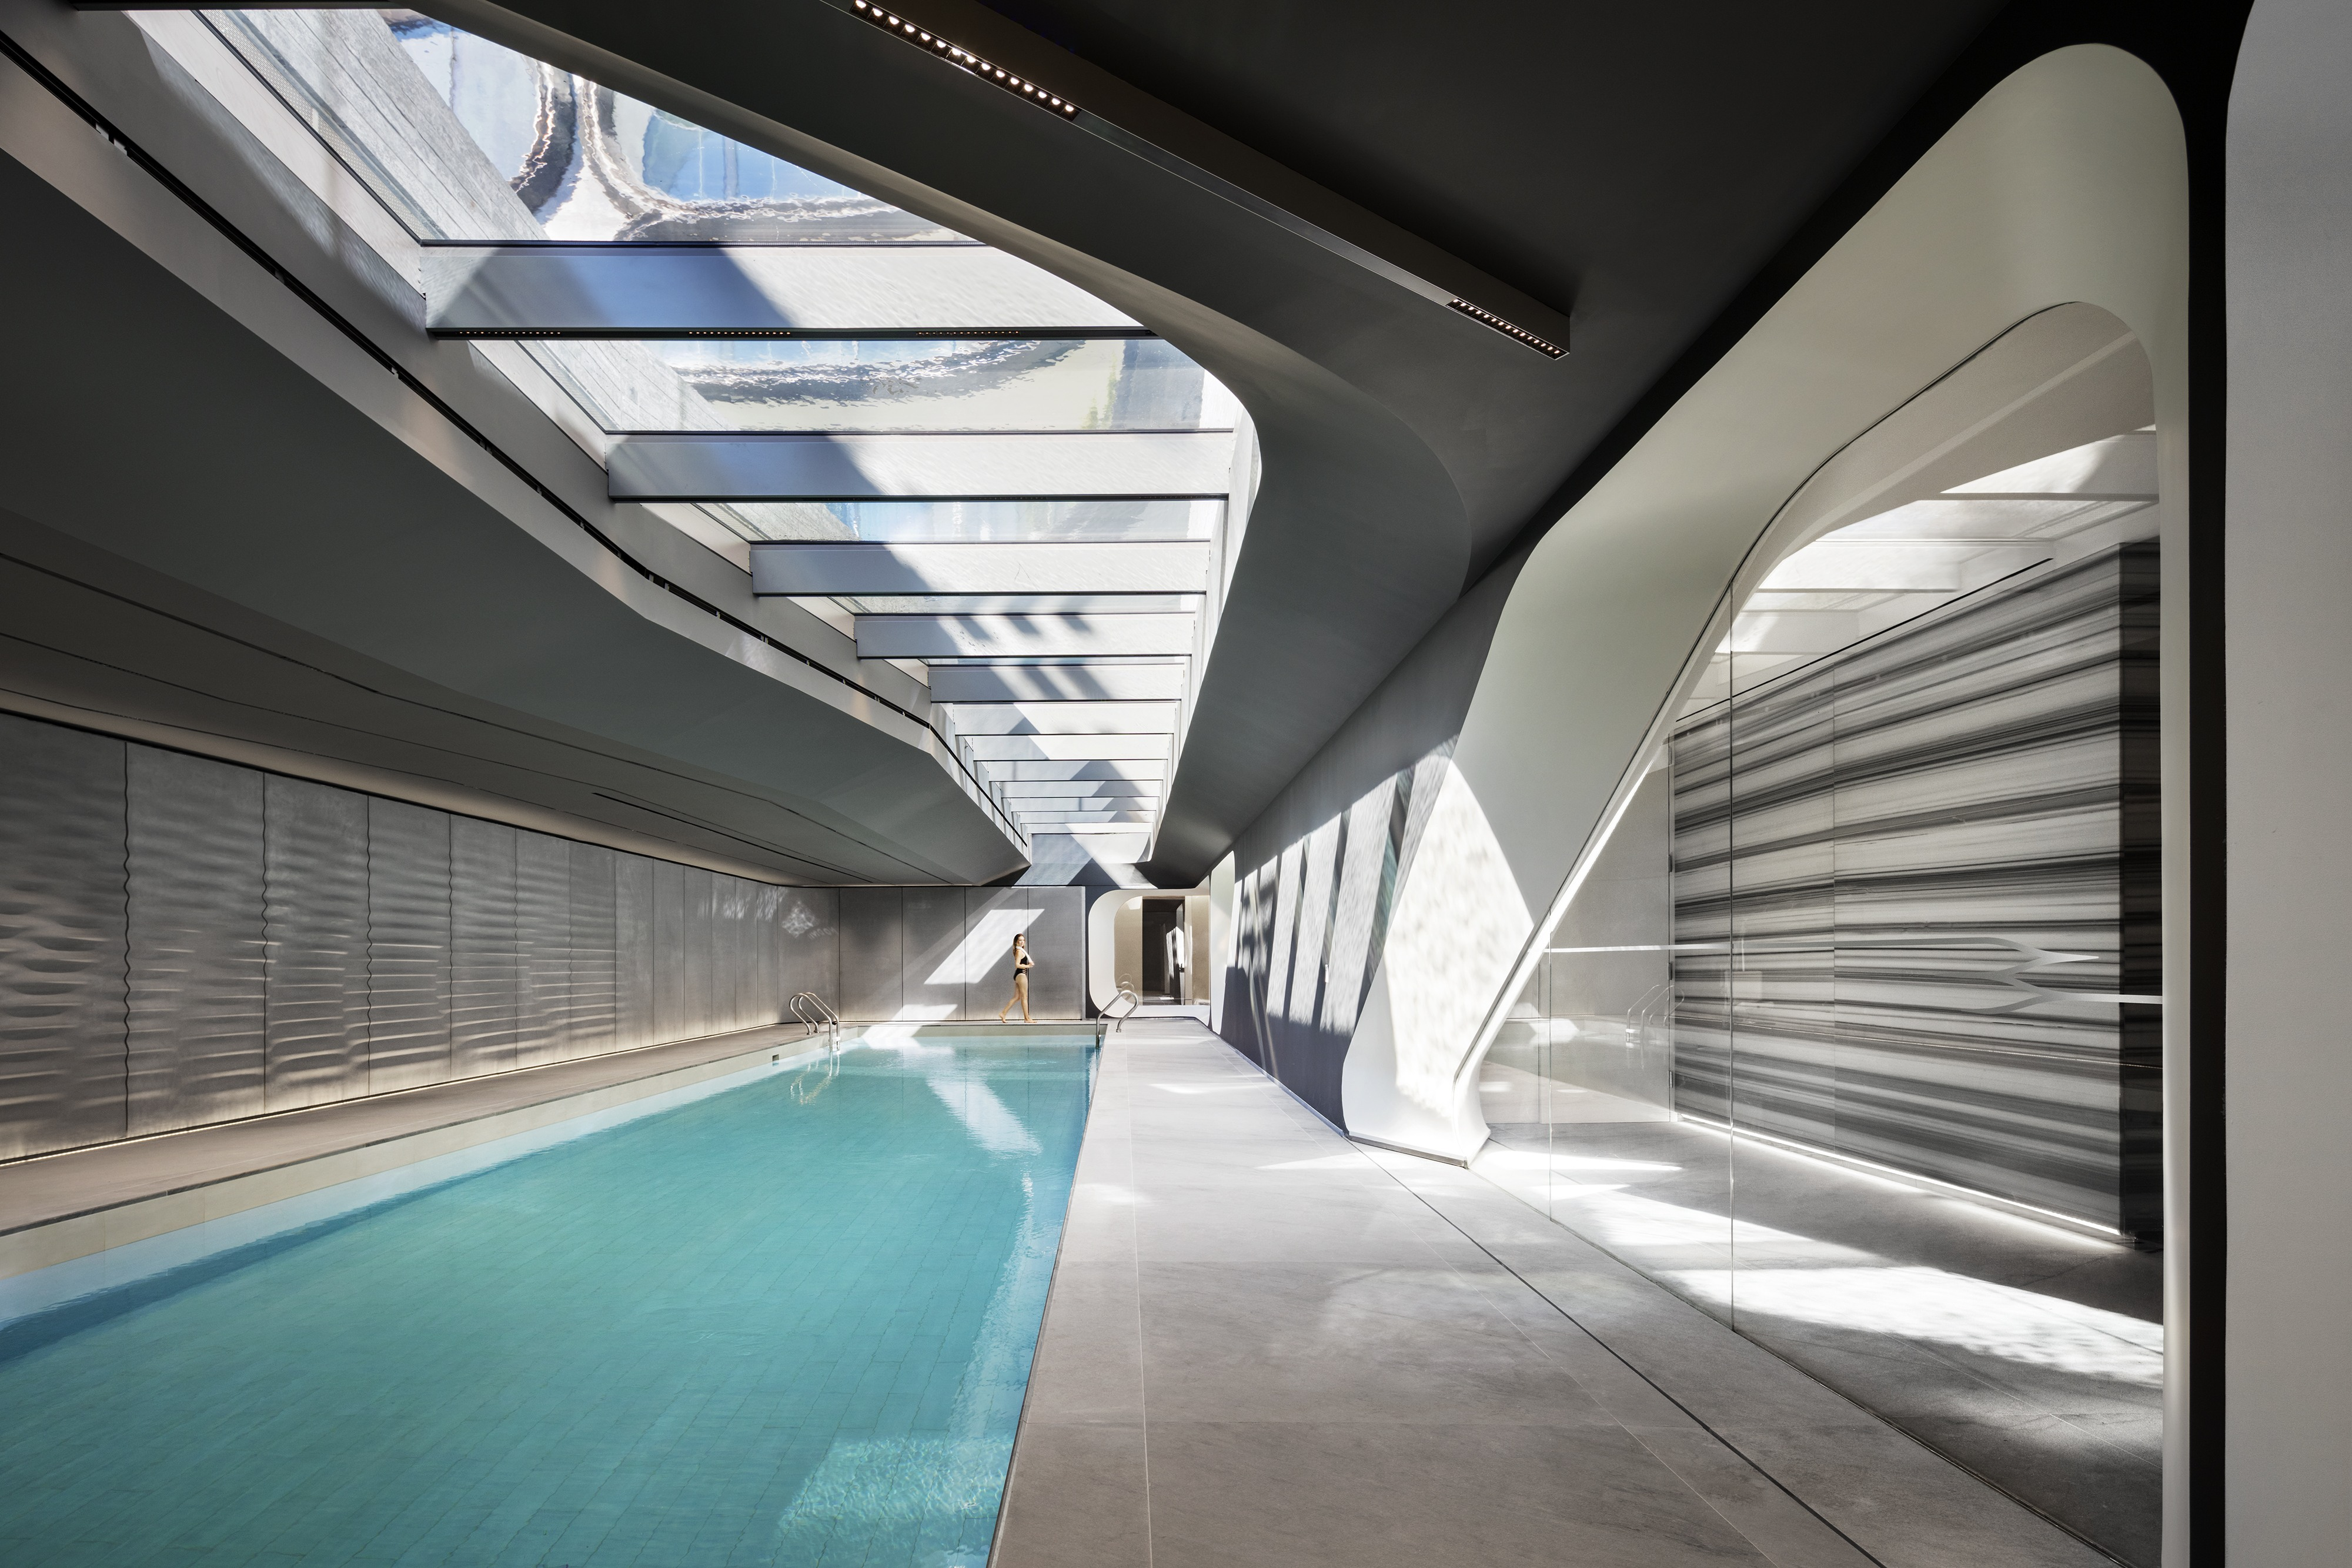 Zaha hadid 39 s 520 west 28th street reveals full suite of for Space architecture